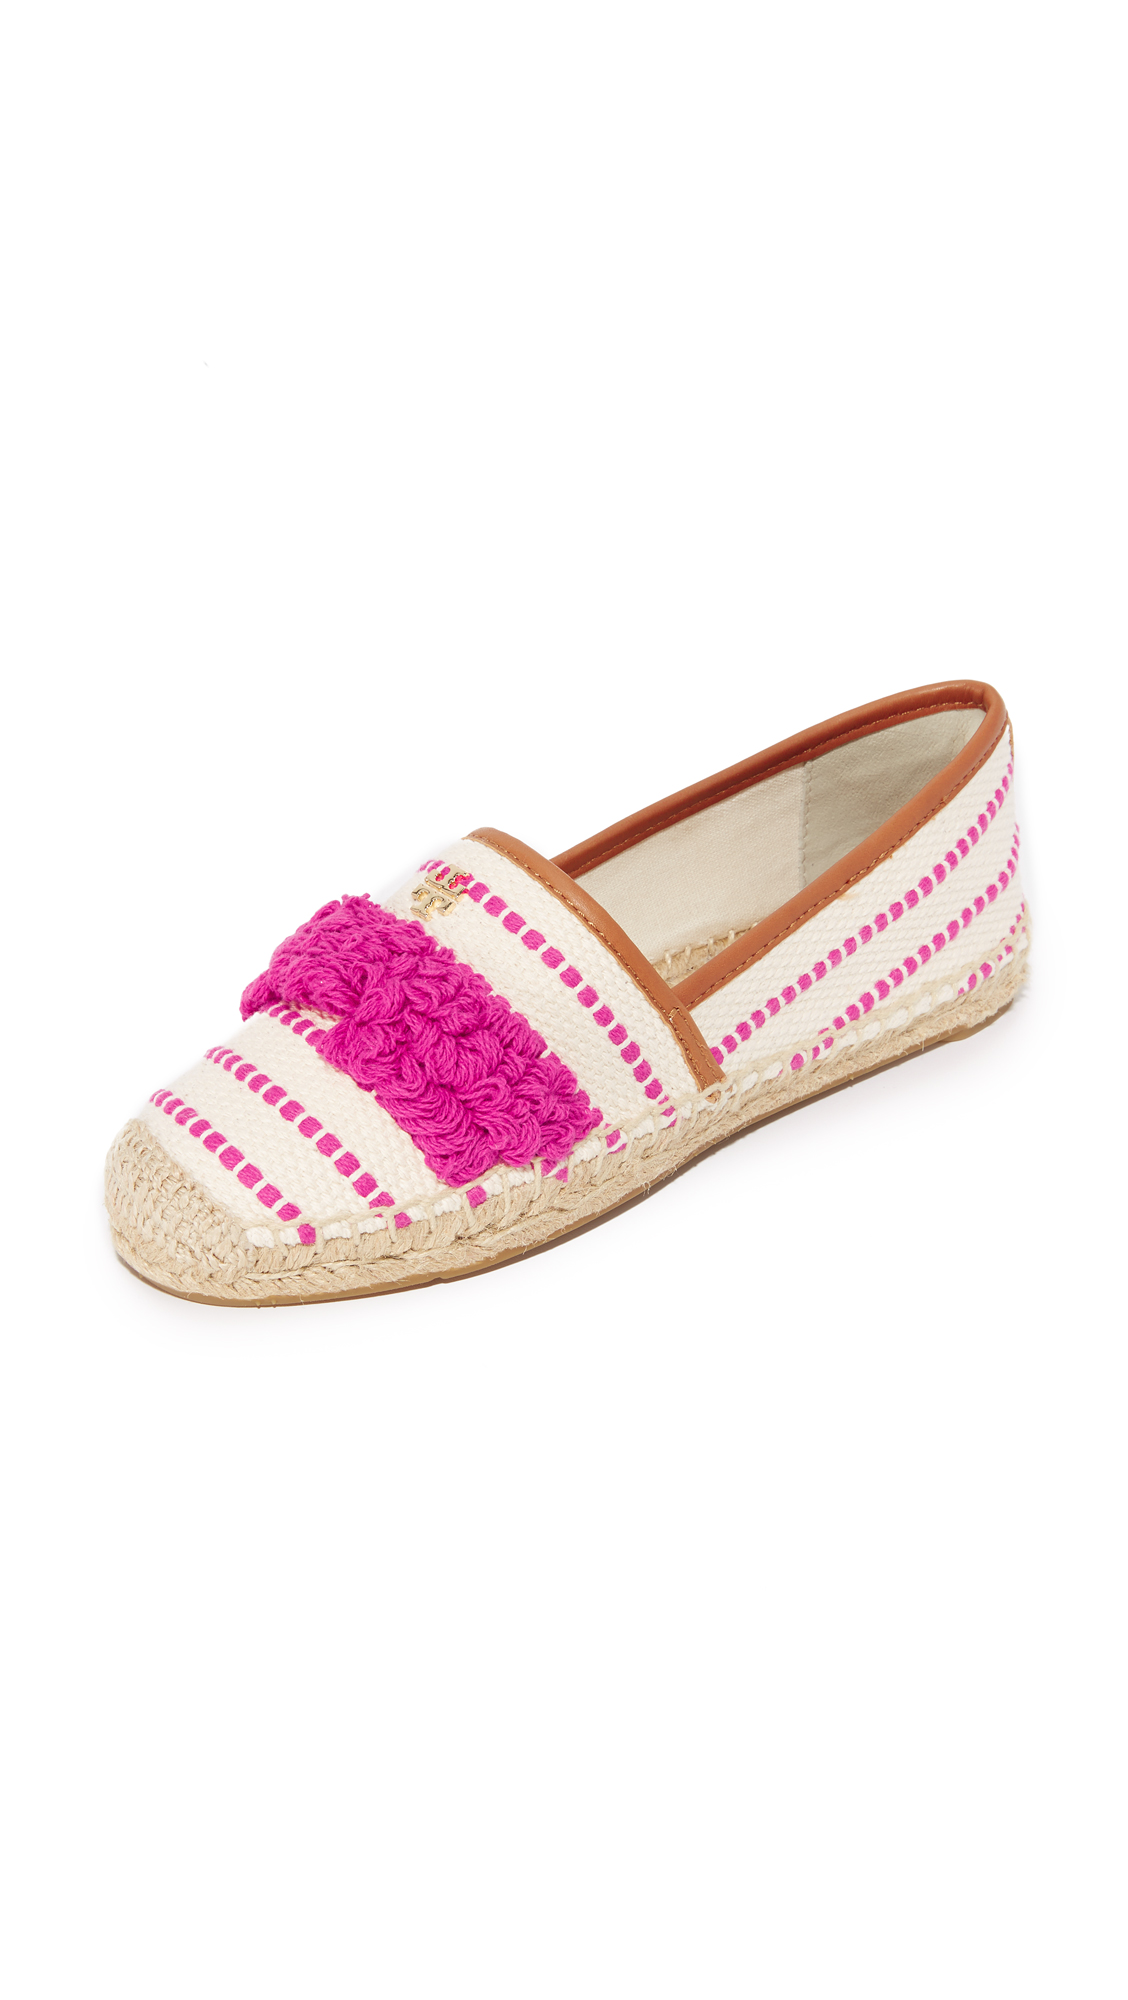 tory burch female tory burch shaw fringe espadrilles hibiscus flowerroyal tan